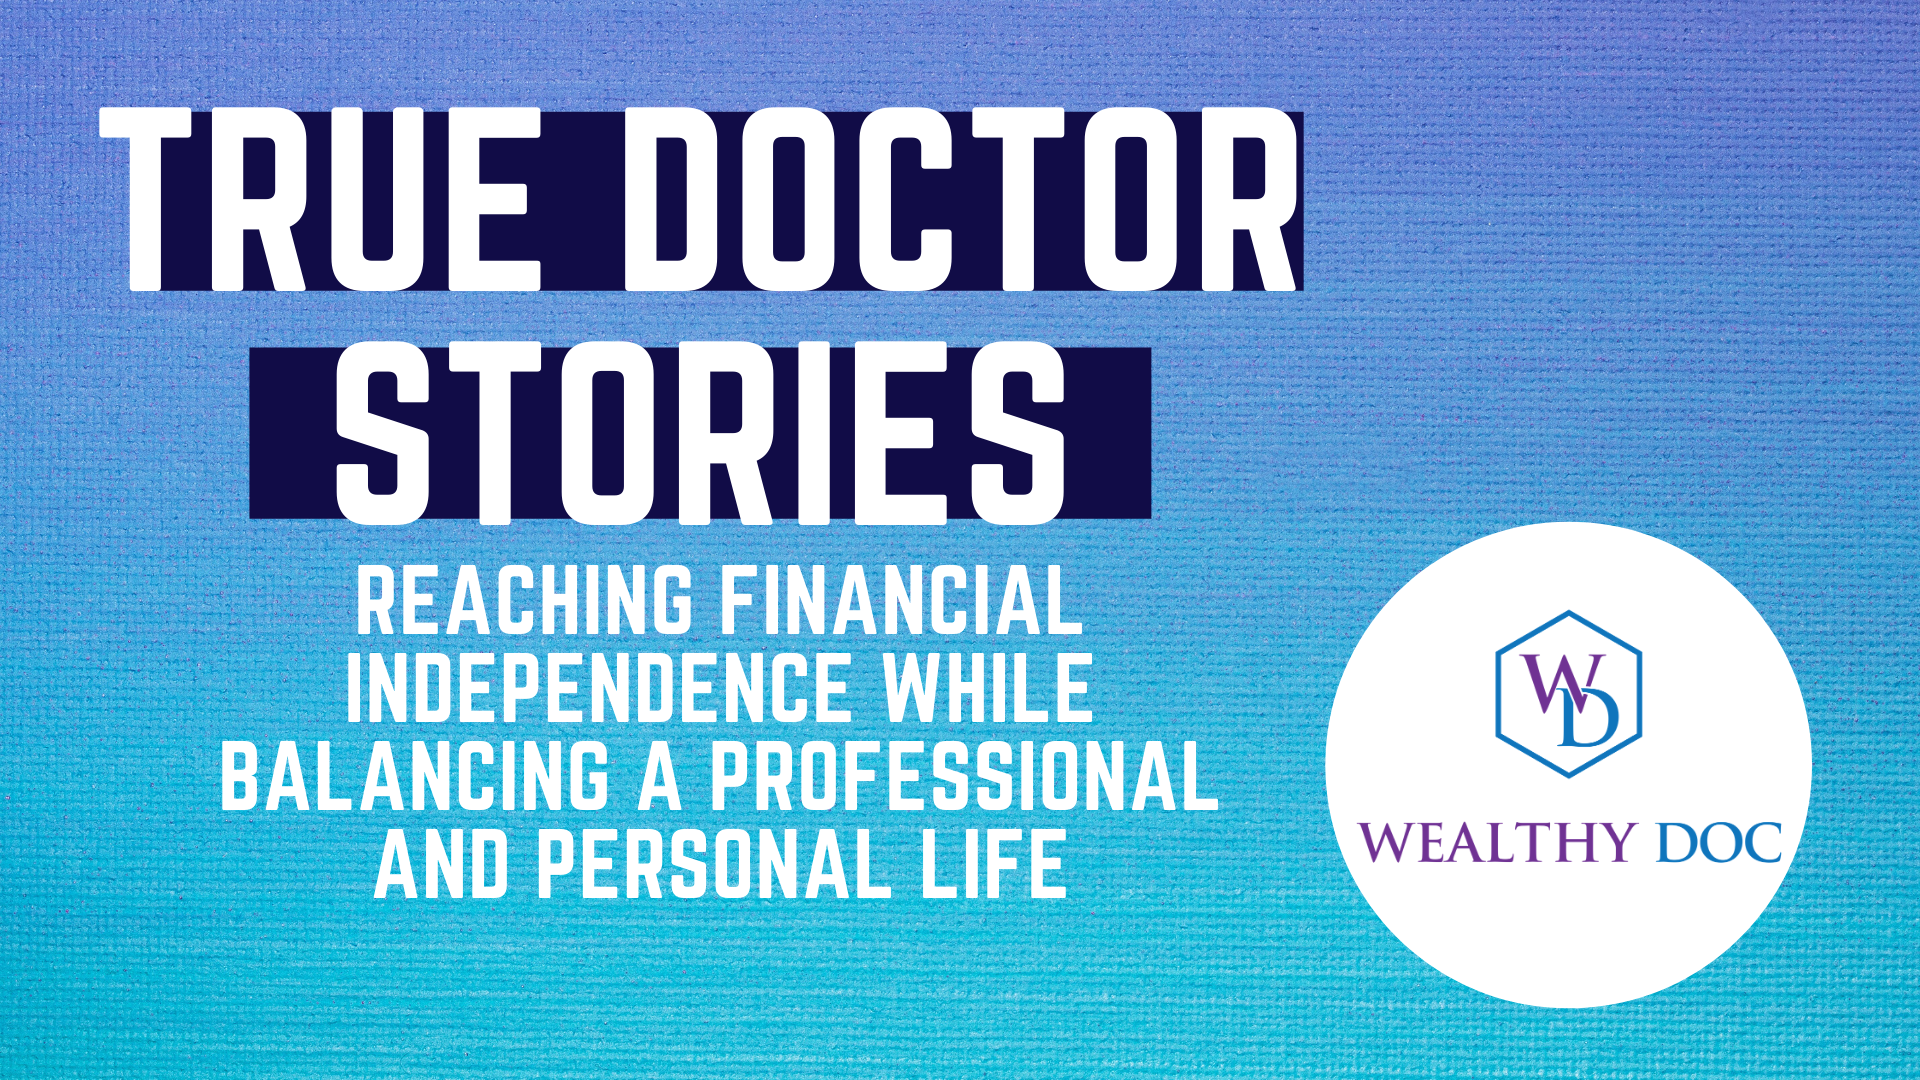 Today's guest on True Doctor Stories is the founder of WeathyDoc.org who speaks about reaching financial independence and the ways it is benefitted his life. He works as a physician part-time, while blogging and prioritizing health, happiness and family. He speaks about reaching financial independence.